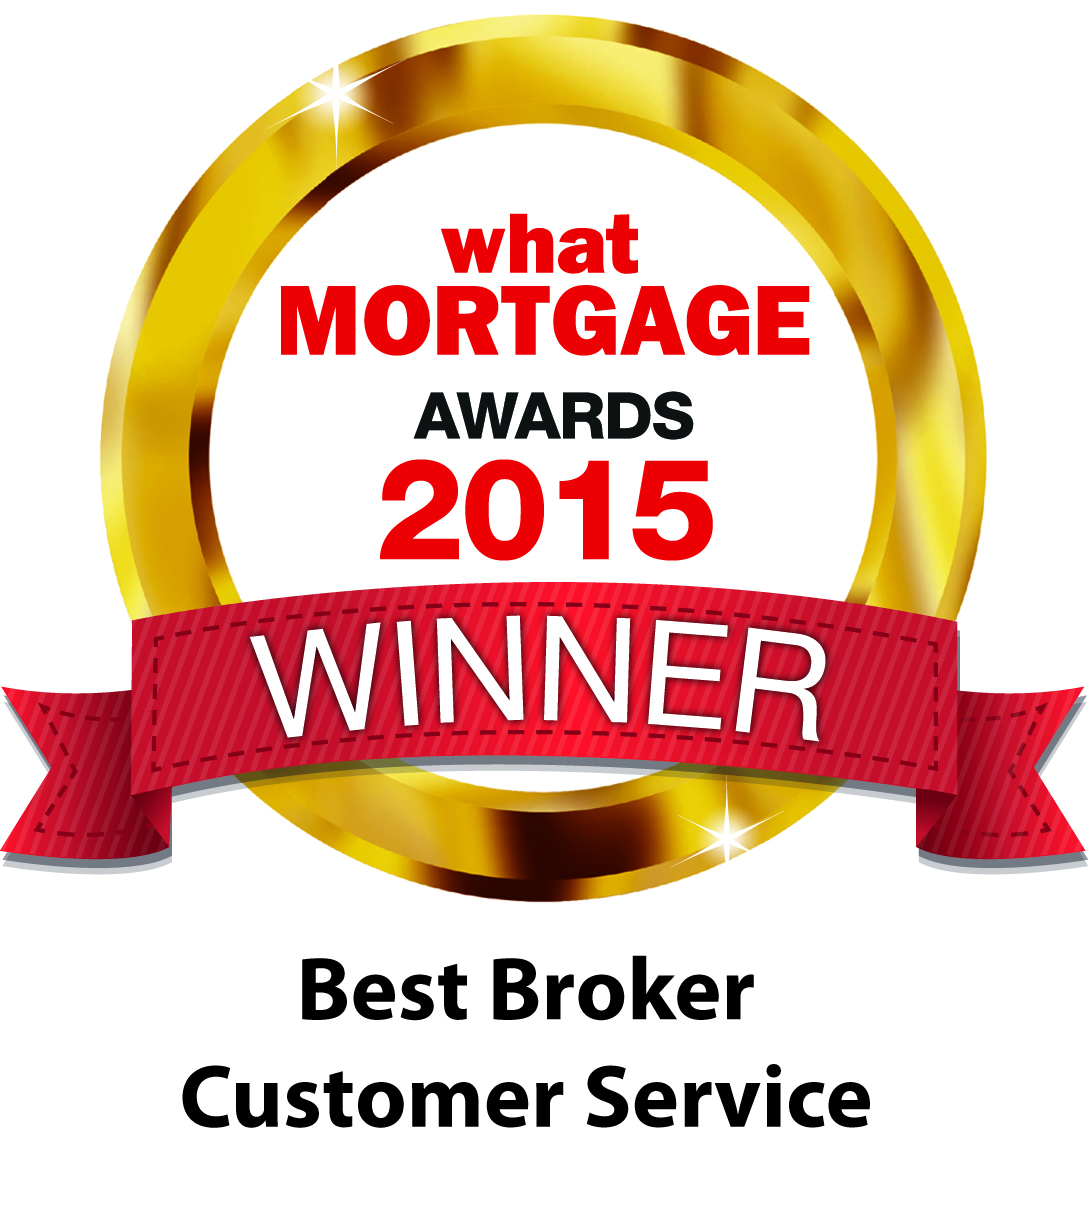 Best Broker Customer Service - What Mortgage Awards 2015